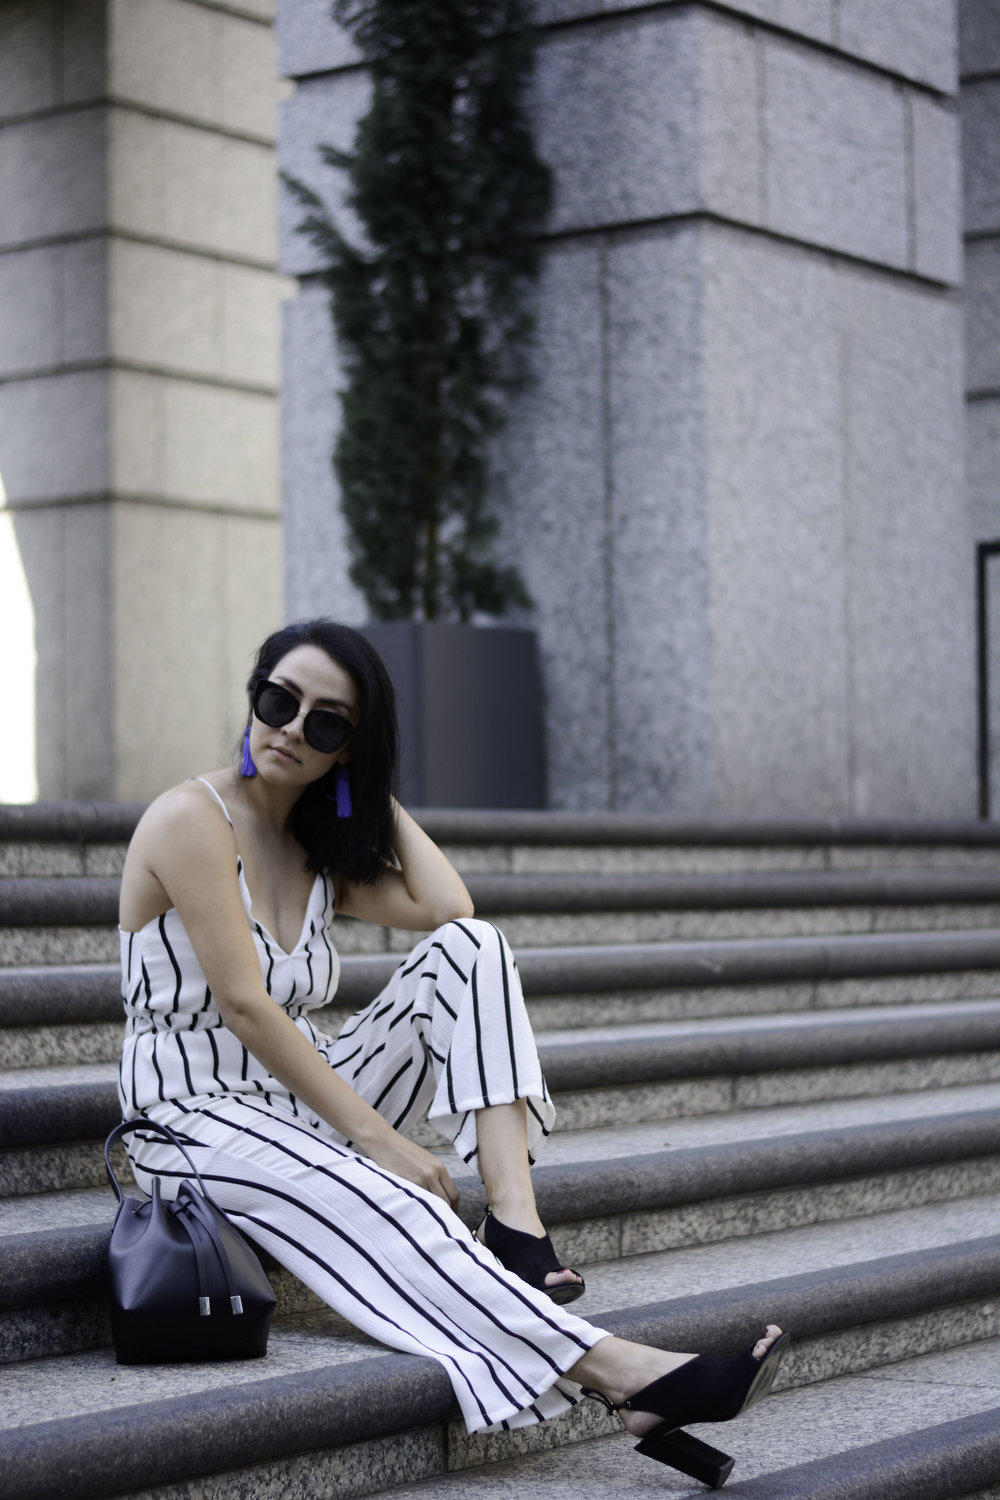 Some of the most popular items we saw in this striped trend were jumpsuits and pants. For this look, we kept it classic and chose a black and white monochromatic color scheme. However, another common theme in this trend was bright and bold colors which seemed to have been inspired by the 70s.